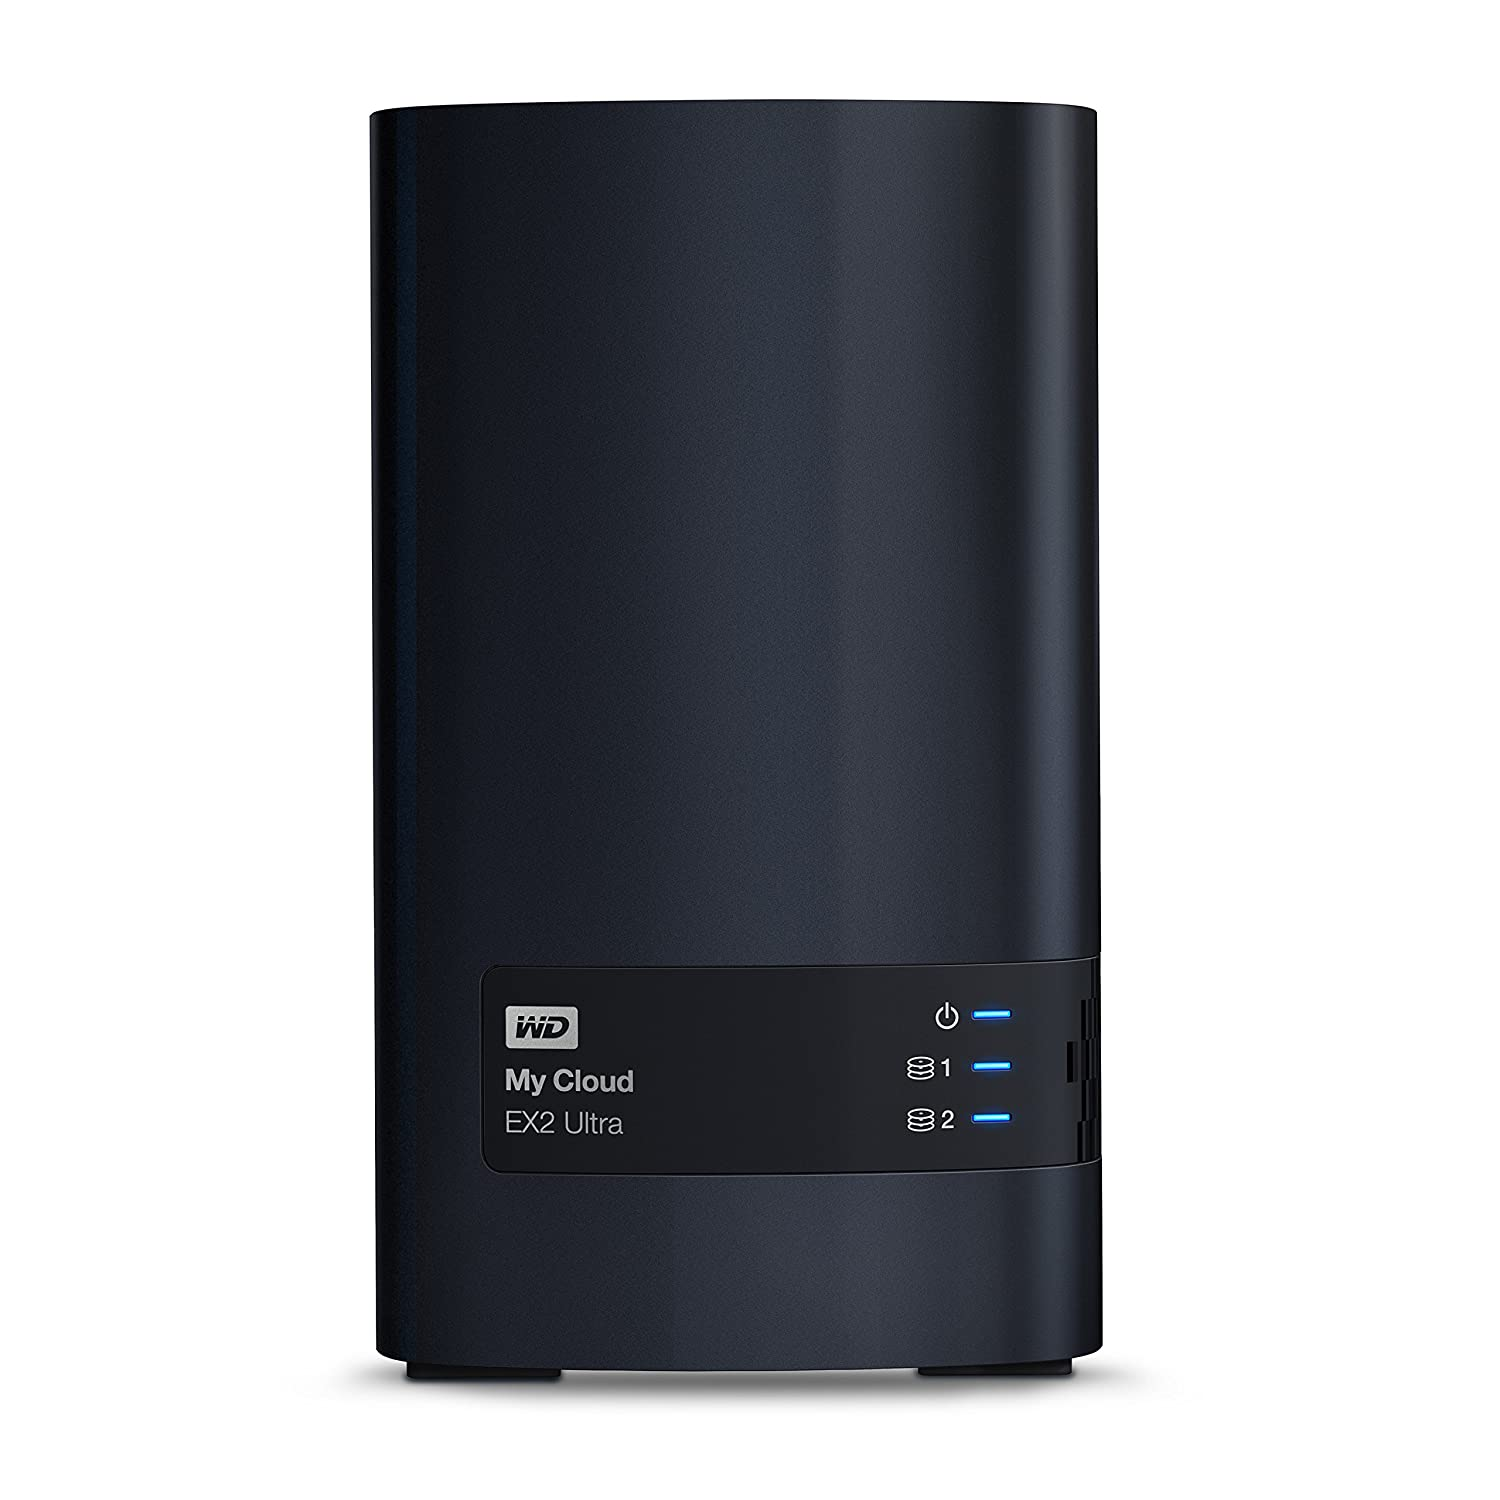 WD 4TB My Cloud EX2 Ultra Network Attached Storage - NAS - WDBVBZ0040JCH-NESN